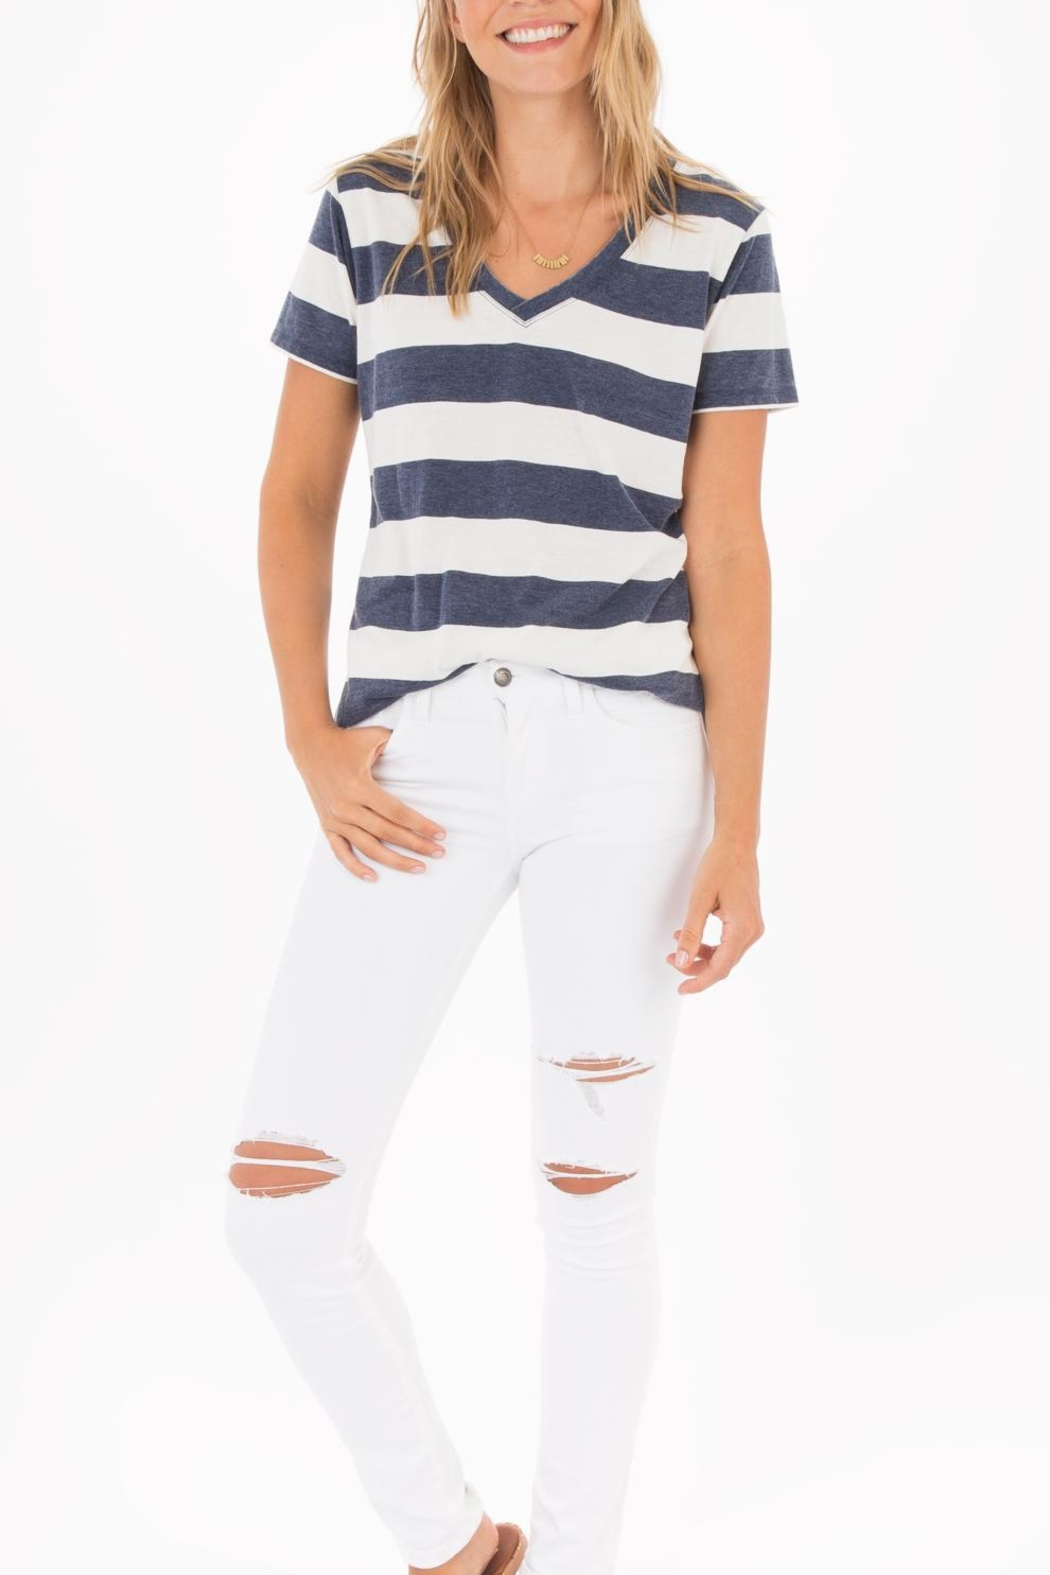 z supply Naples Striped Tee - Back Cropped Image